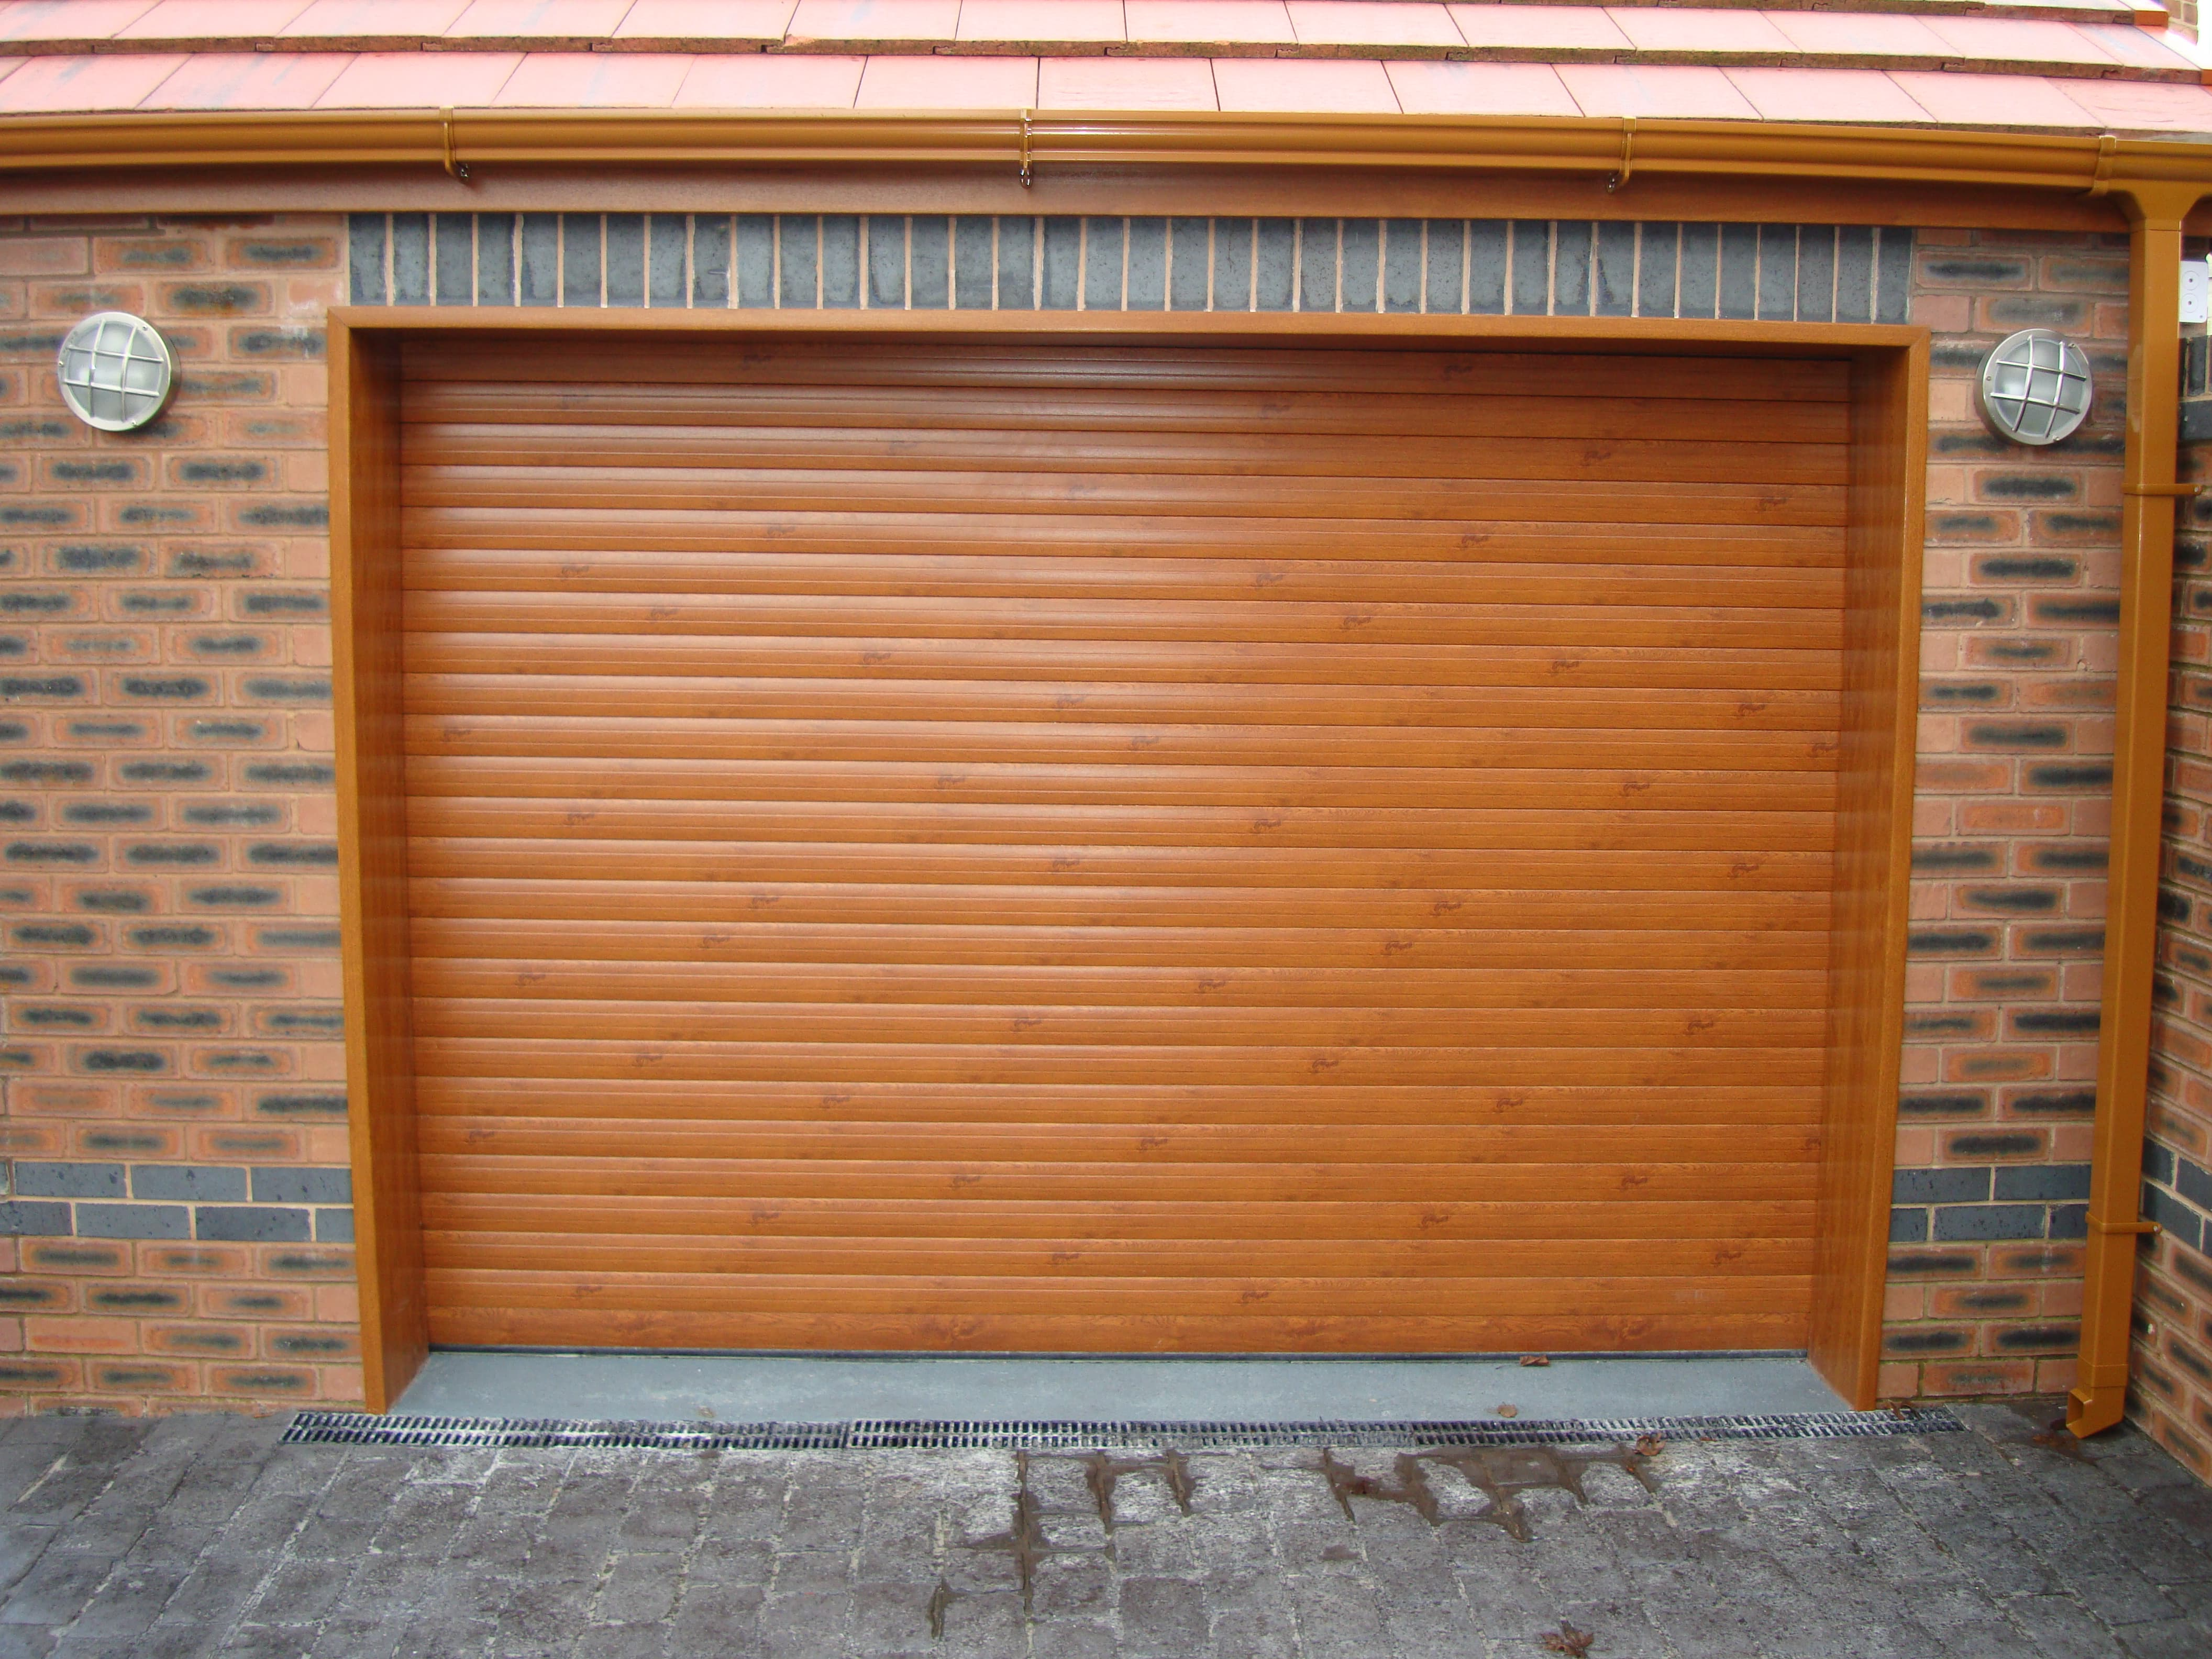 3168 #AA3221 Secure Garage Doors Liverpool Wirral & Warrington All Secure Systems  save image Garage Doors Brands 38474224